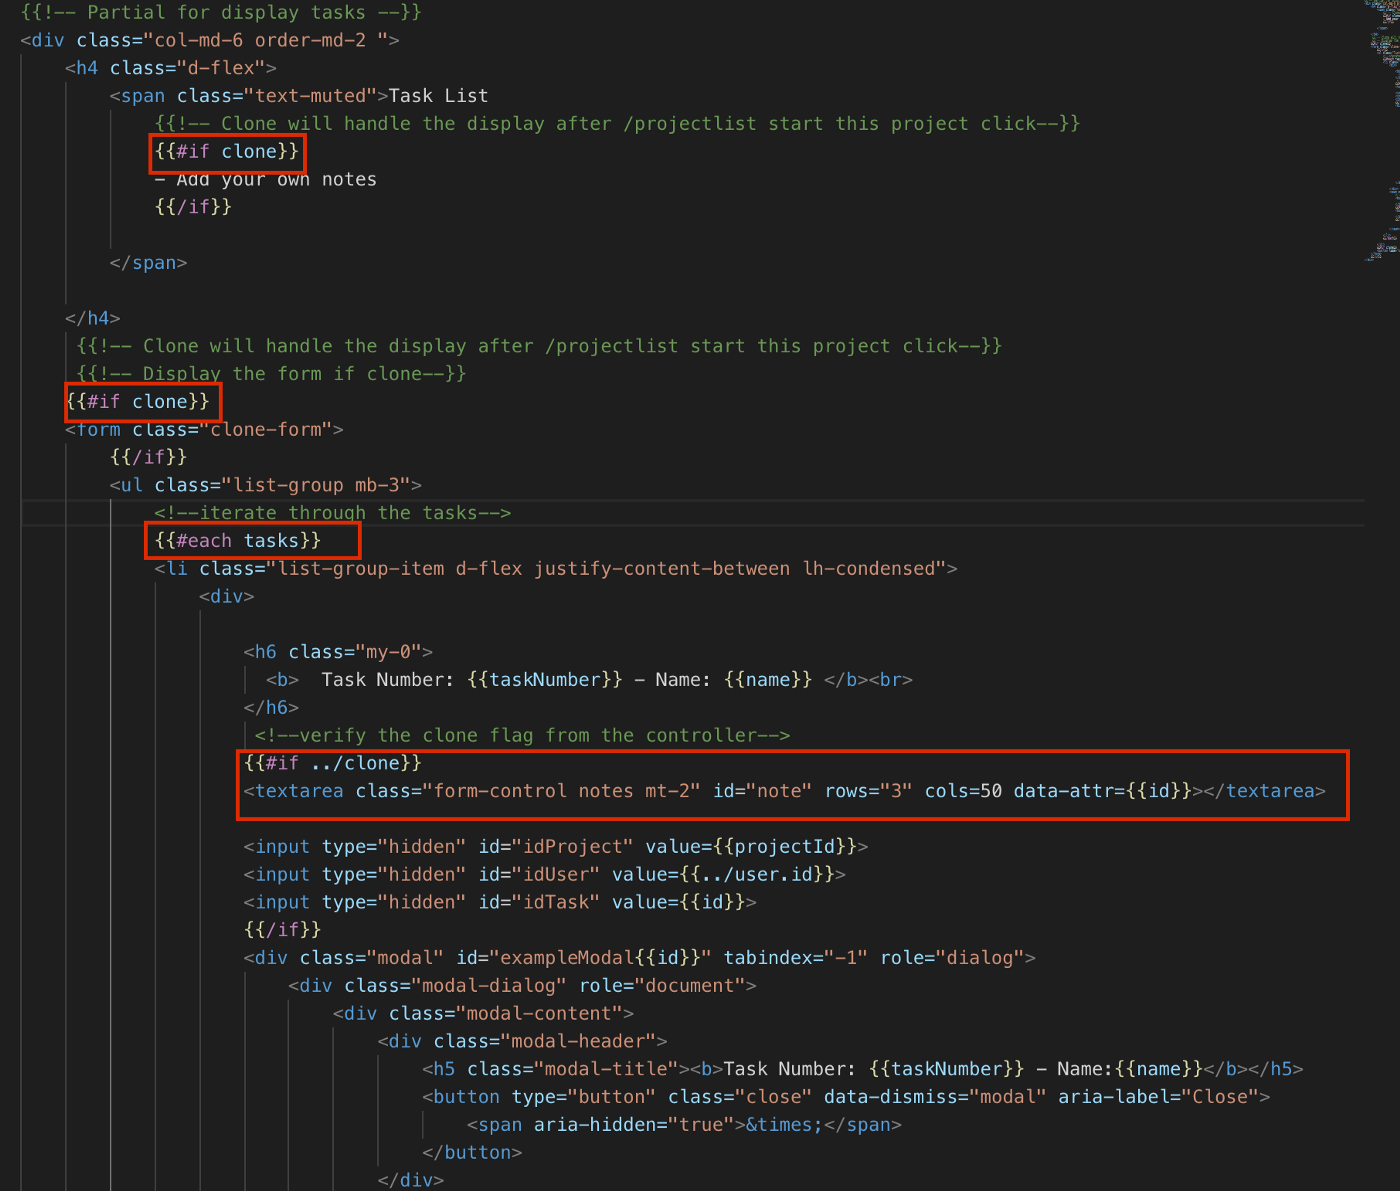 How to get full advantage of Handlebars using Sequelize, Express MVC